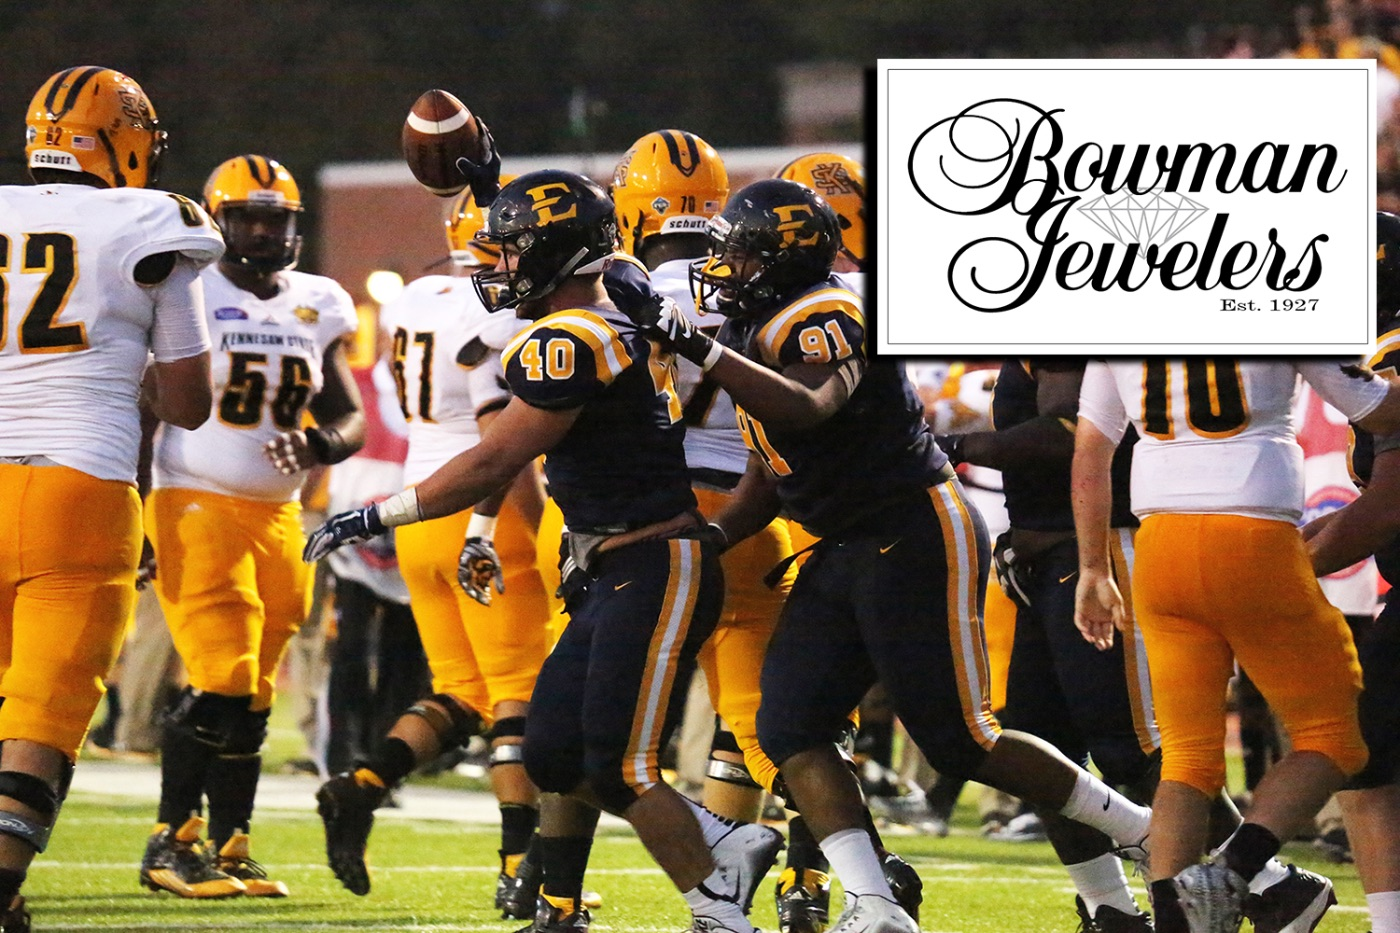 Football releases Bowman Jewelers Player of the Game awards